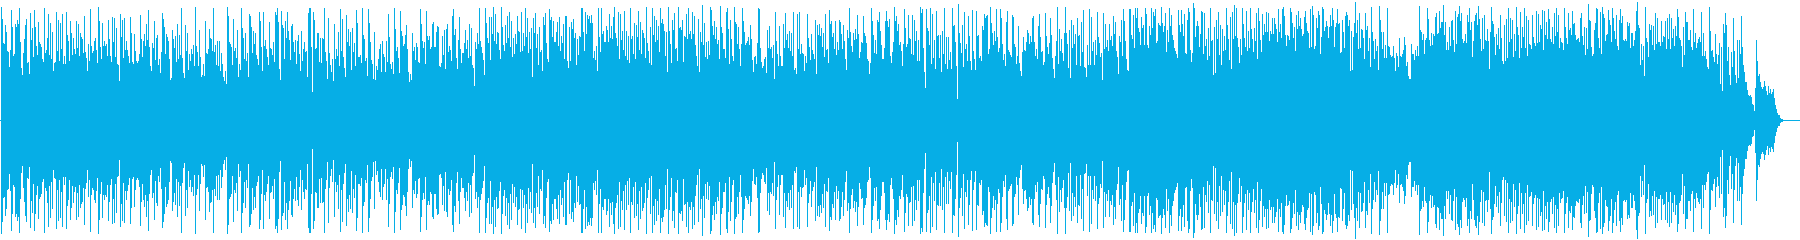 Delicate, clear and beautiful melody's reproduced waveform